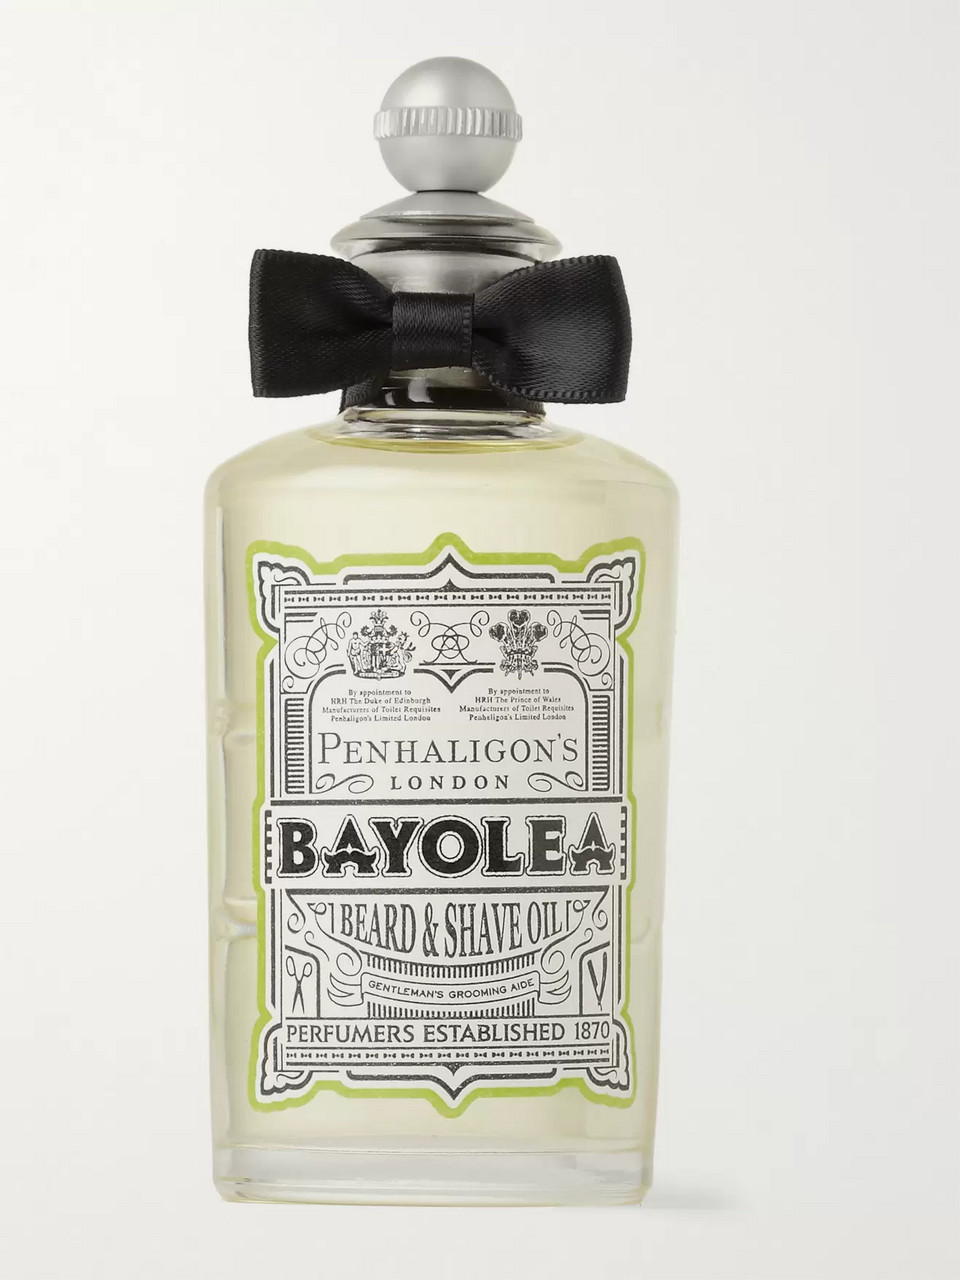 Penhaligon's Bayolea Beard & Shave Oil, 100ml